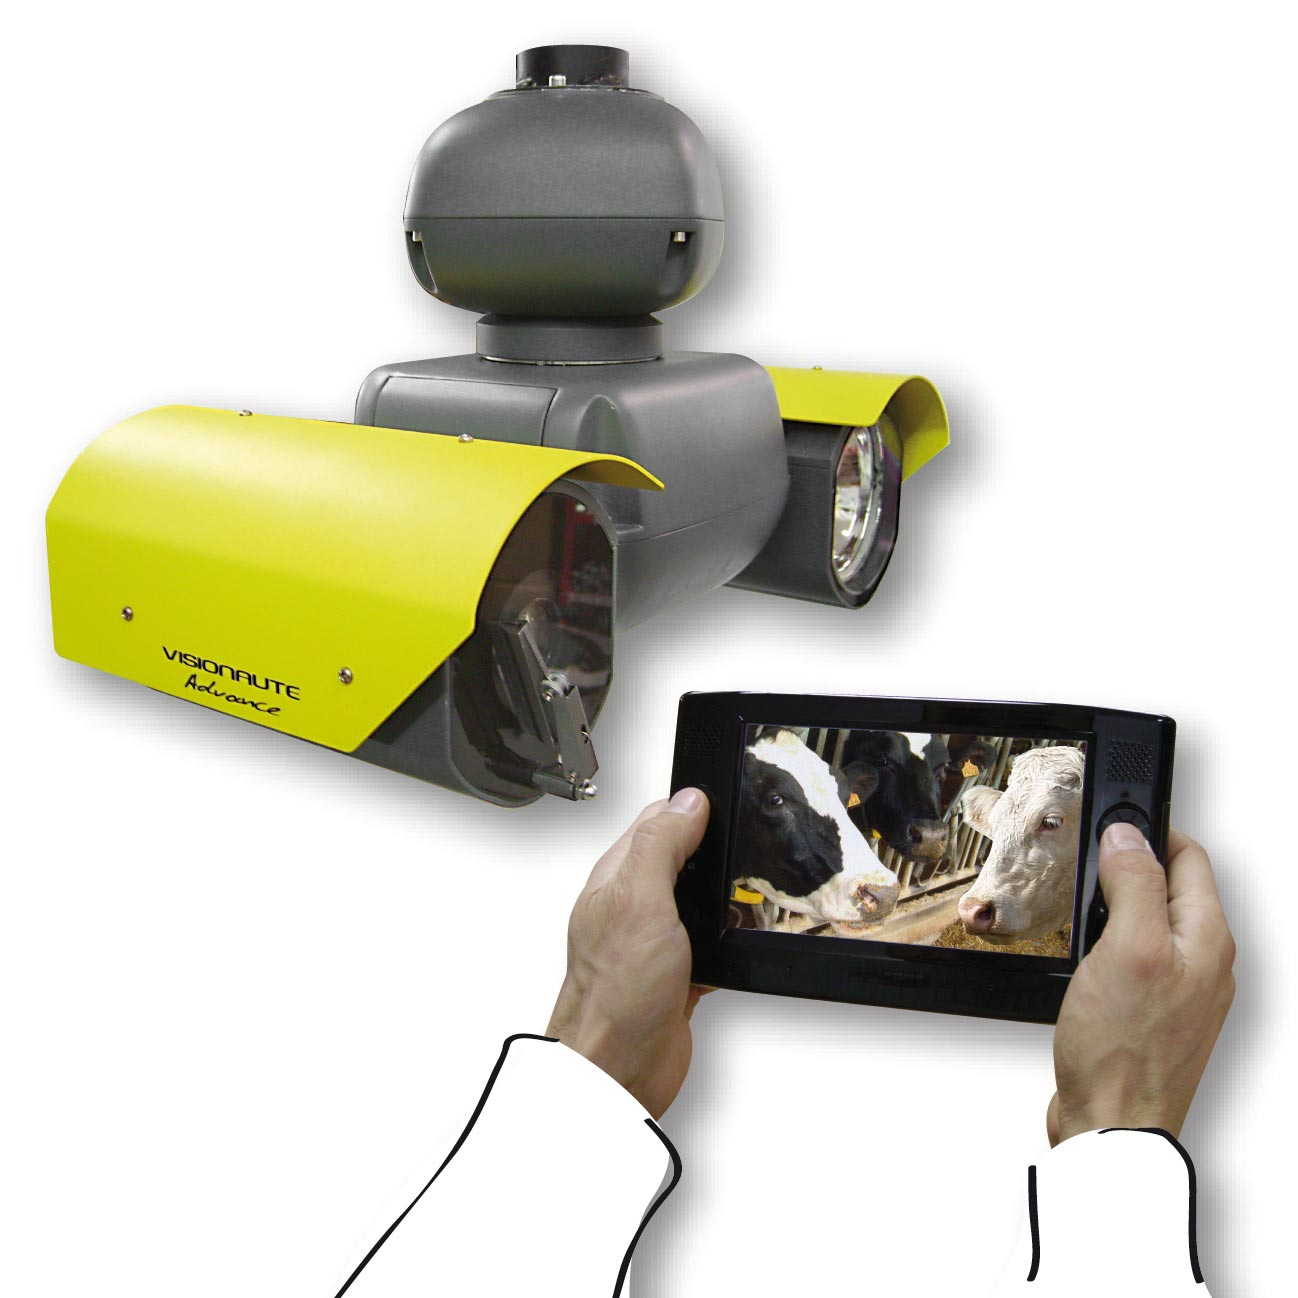 video-surveillance-d-elevage-et-d-etable-visionaute-camera-sofie-avec-tablette